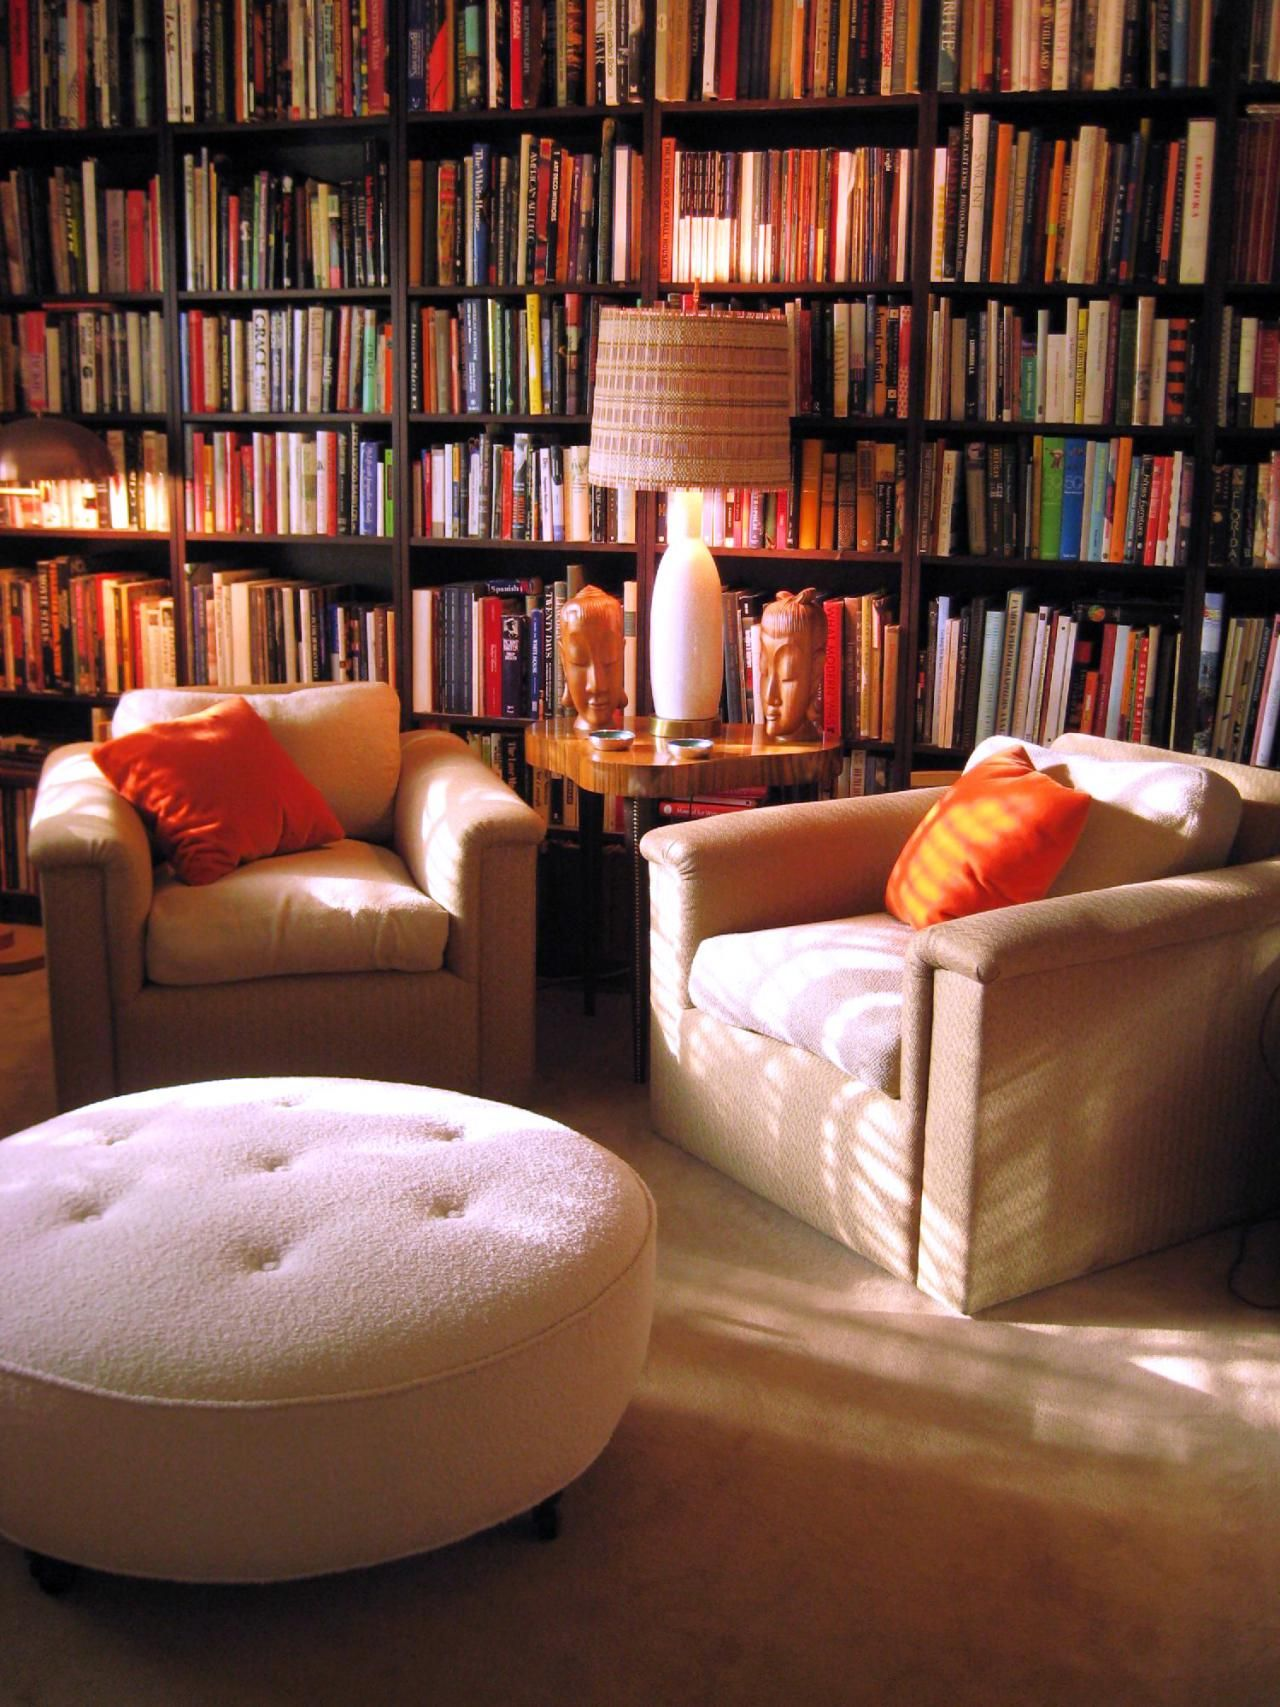 Reading Room Design Ideas: Overstuffed Chairs, Library